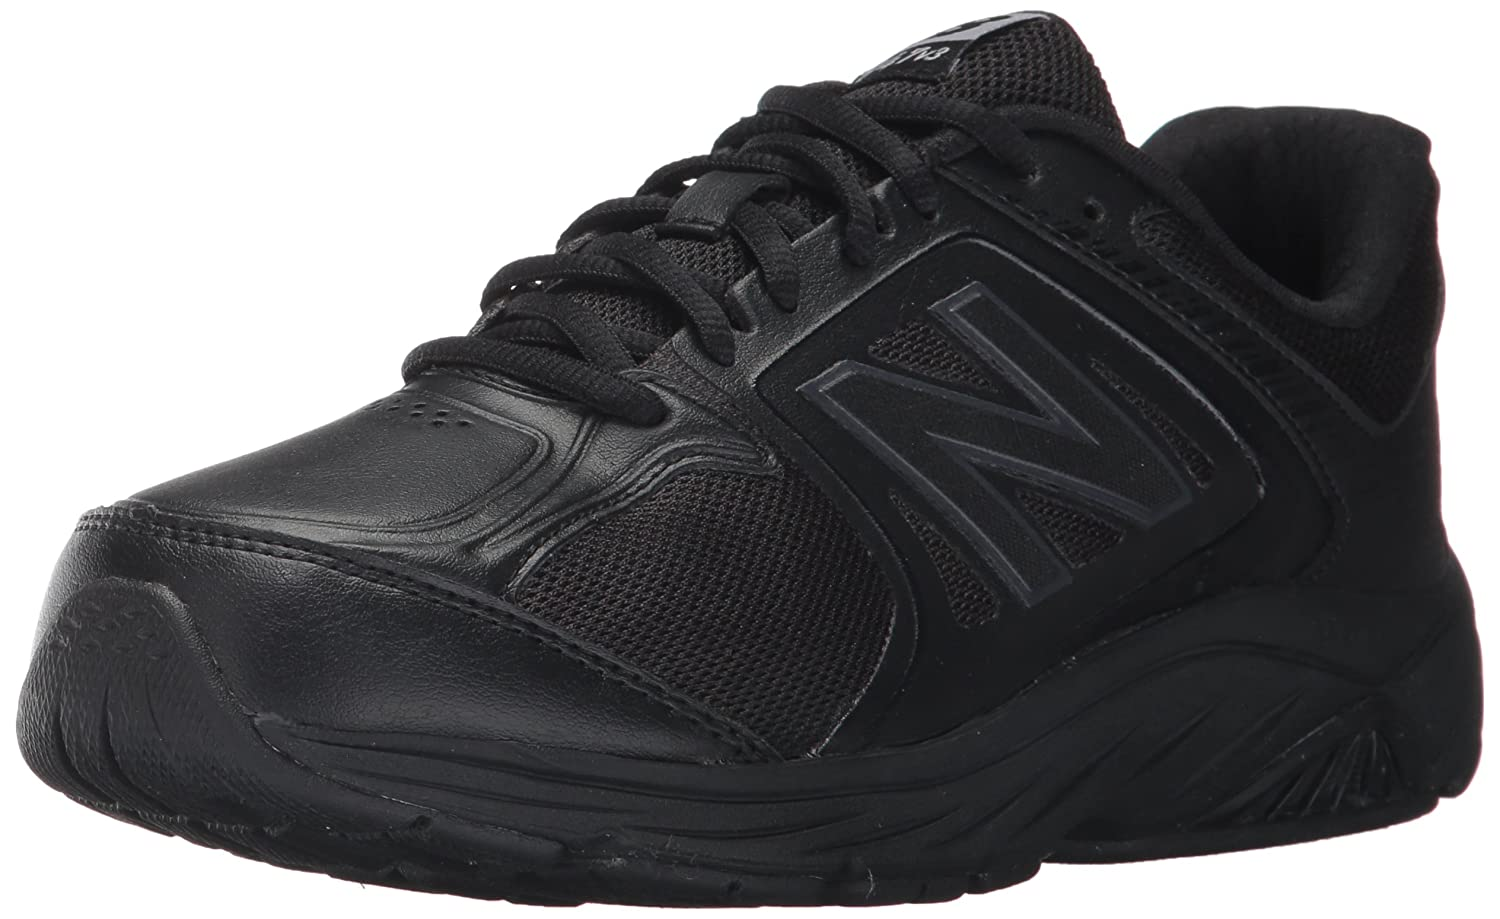 New Balance Women's 847v3 Walking Shoe B01NBA07R4 6.5 2E US|Black/Black